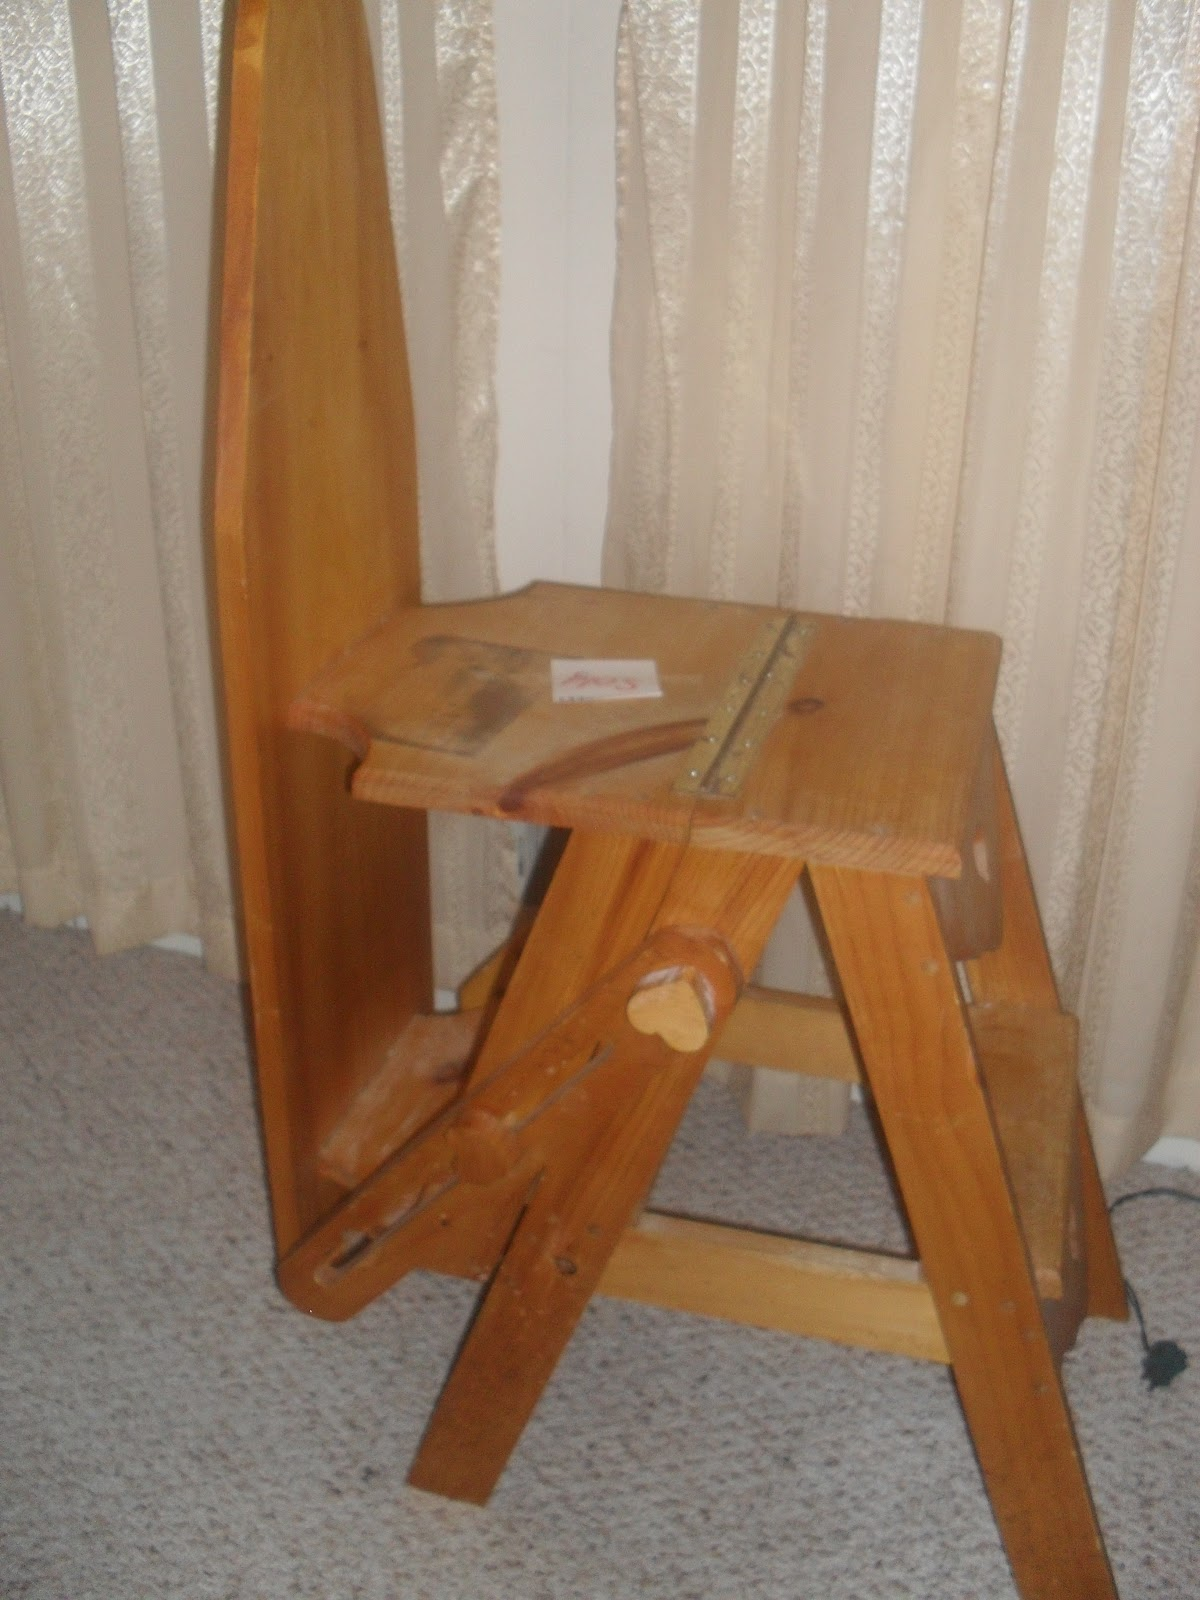 chair step stool ironing board kitchen table chairs and bench lizzi 39s blog onit bachelor dream come true